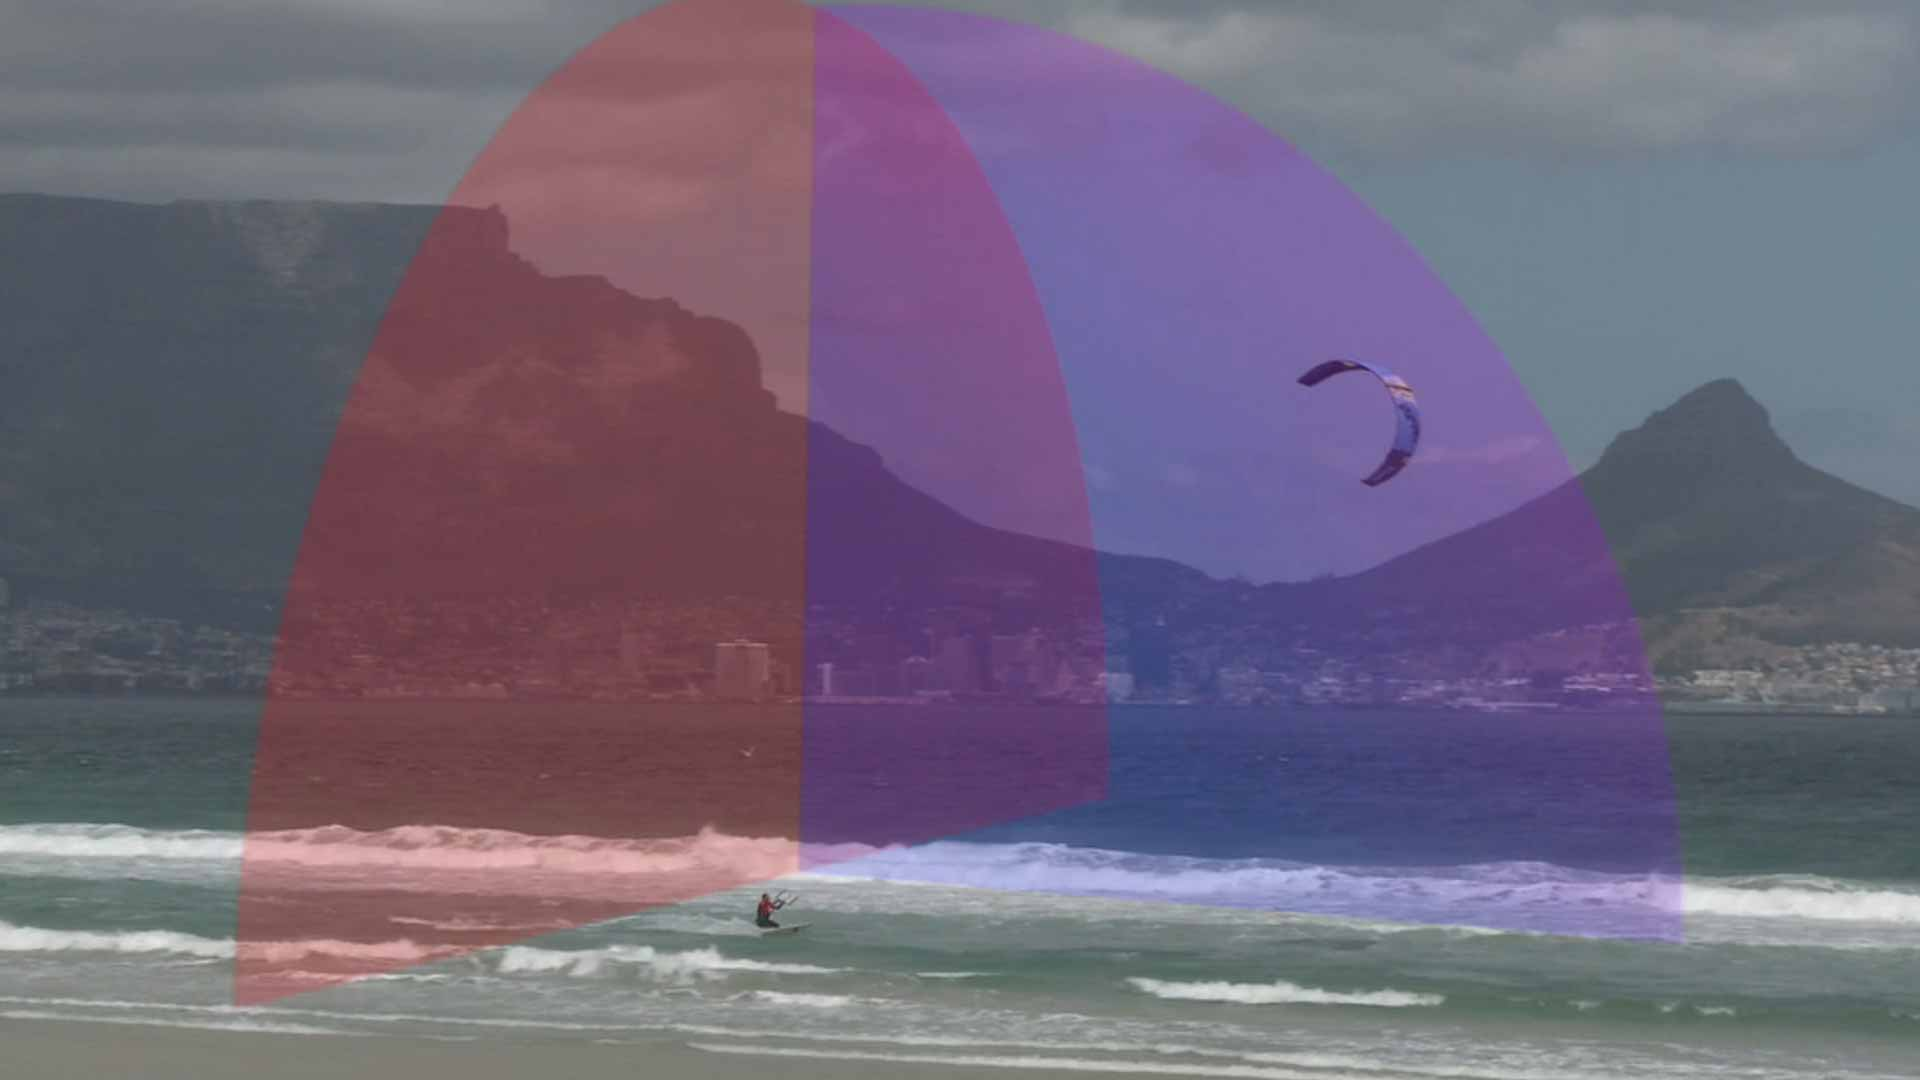 learn wave kitesurfing Cape Town